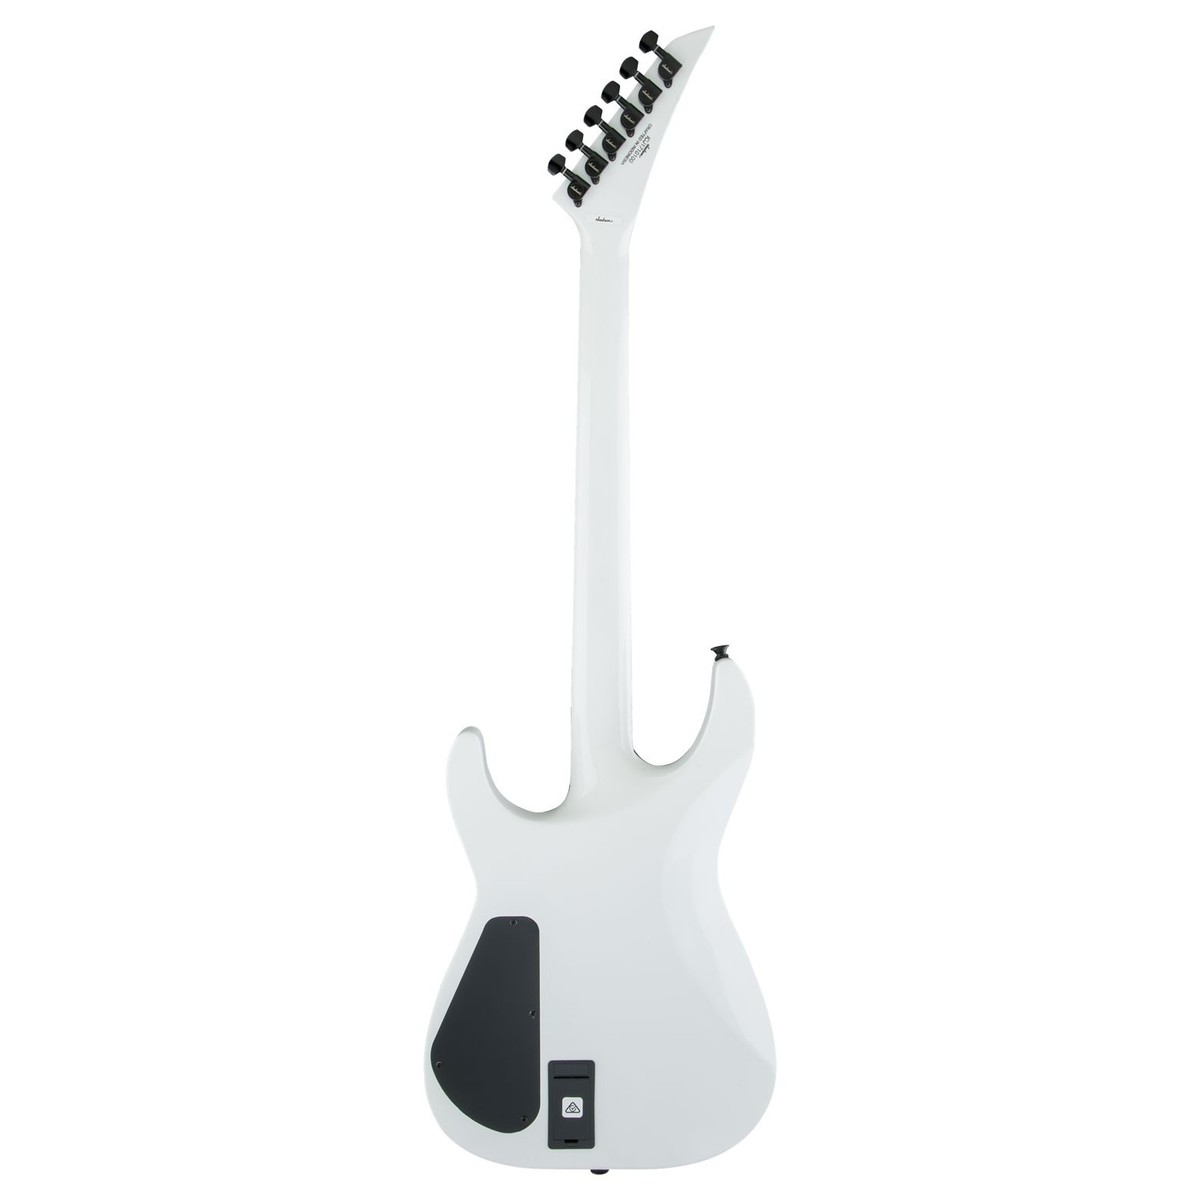 Jackson Professional Guitar Wiring Schematics Diagrams Pickup Diagram Pro Mick Thomson Sl2 Soloist Arctic White At Gear4music Rh Com Pick Up For One